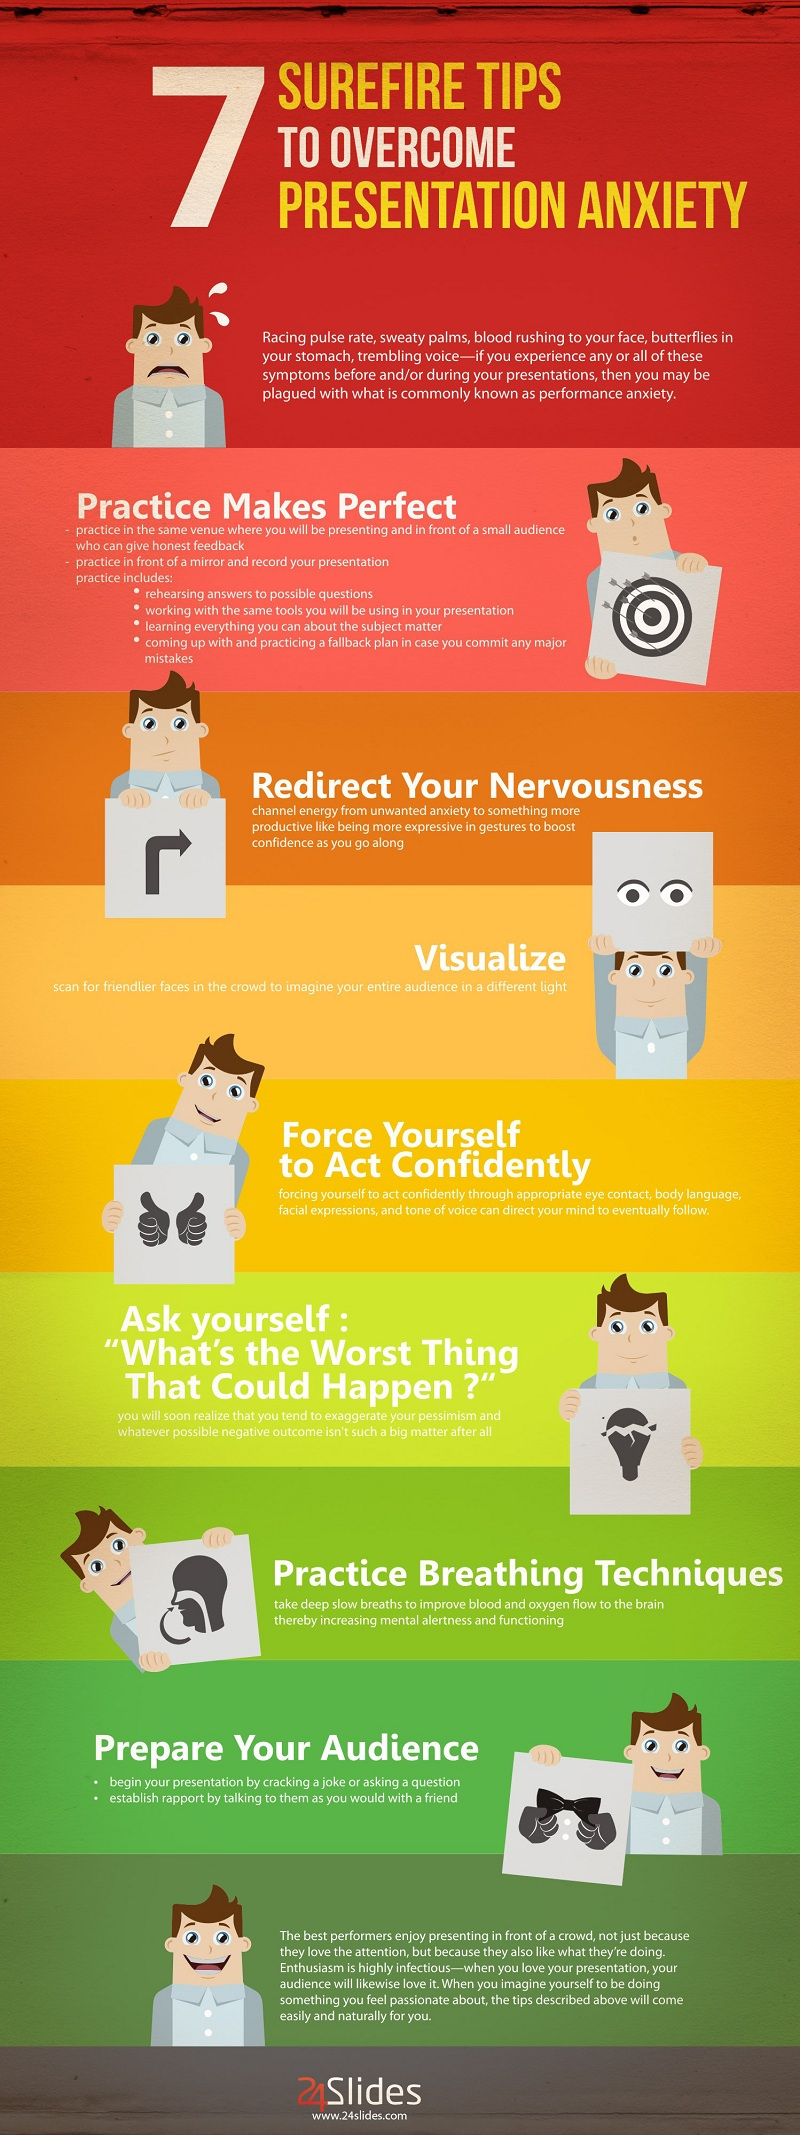 7 Surefire Tips To Overcome Presentation Anxiety #infographic